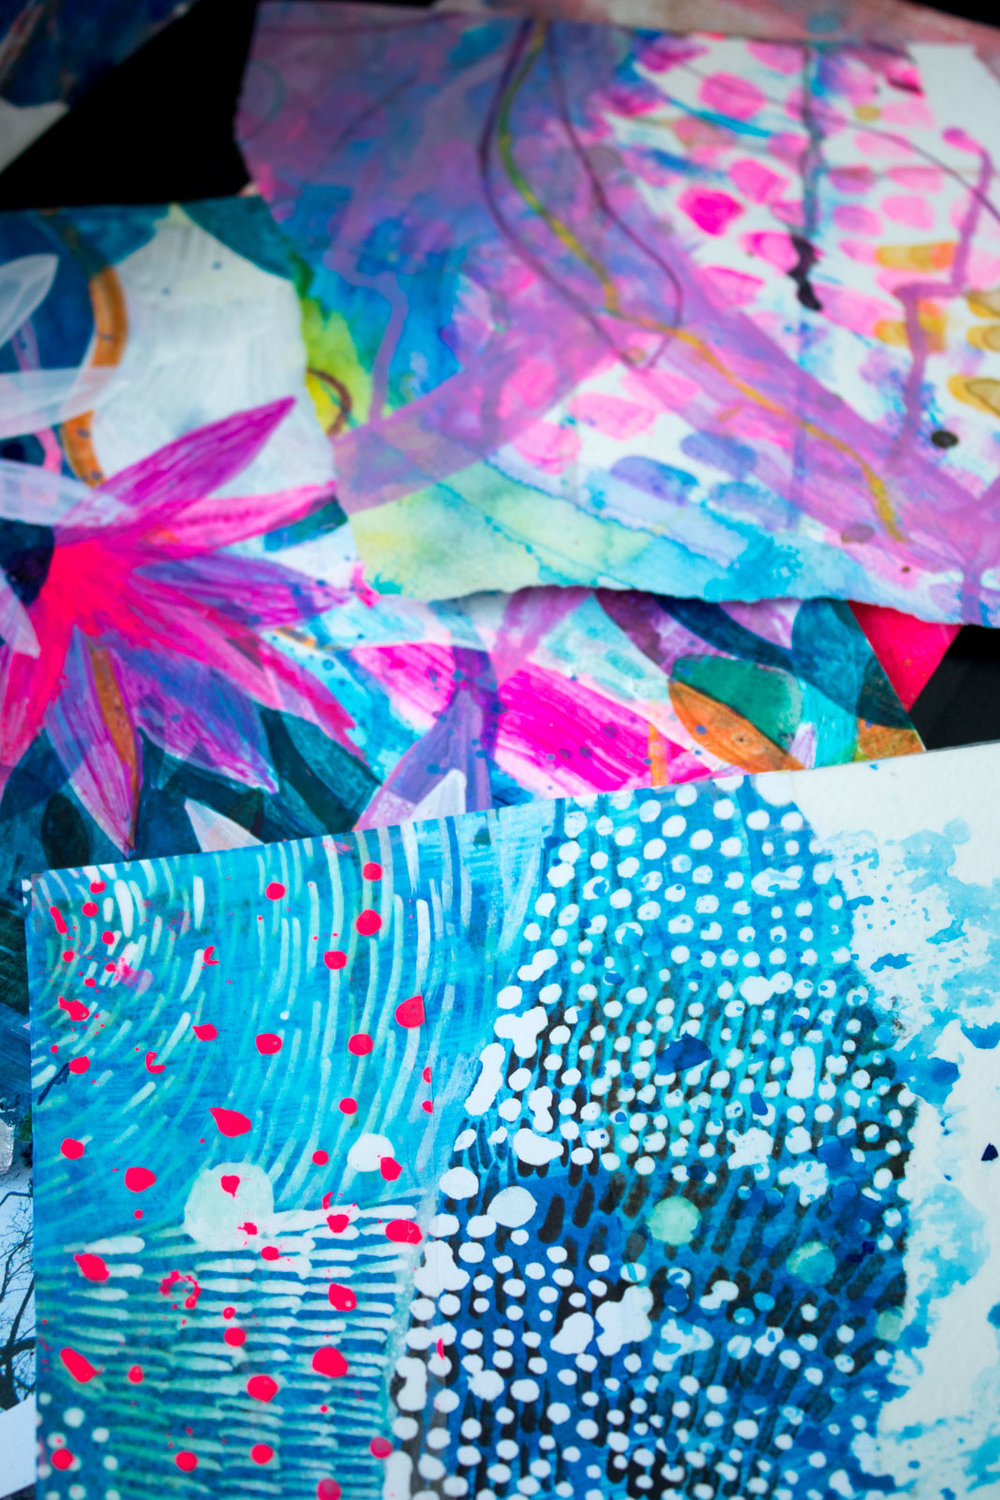 PATTERNED SAMPLE PAGES IN A PILE IN THE STUDIO